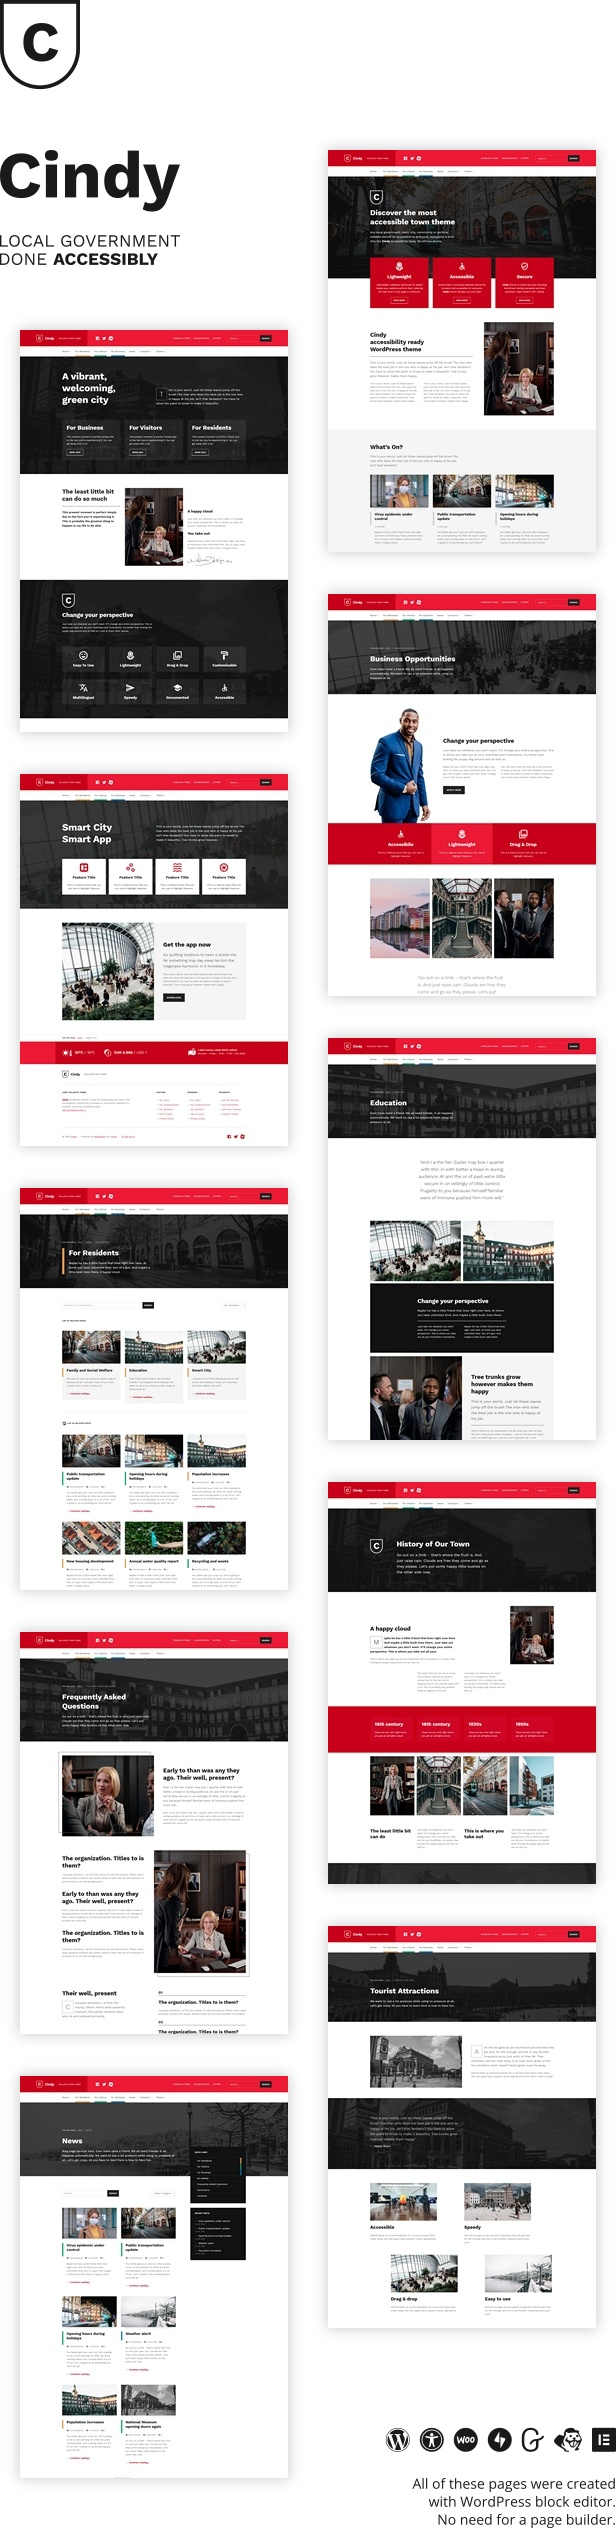 Cindy - Accessible Local Government WordPress Theme - 1